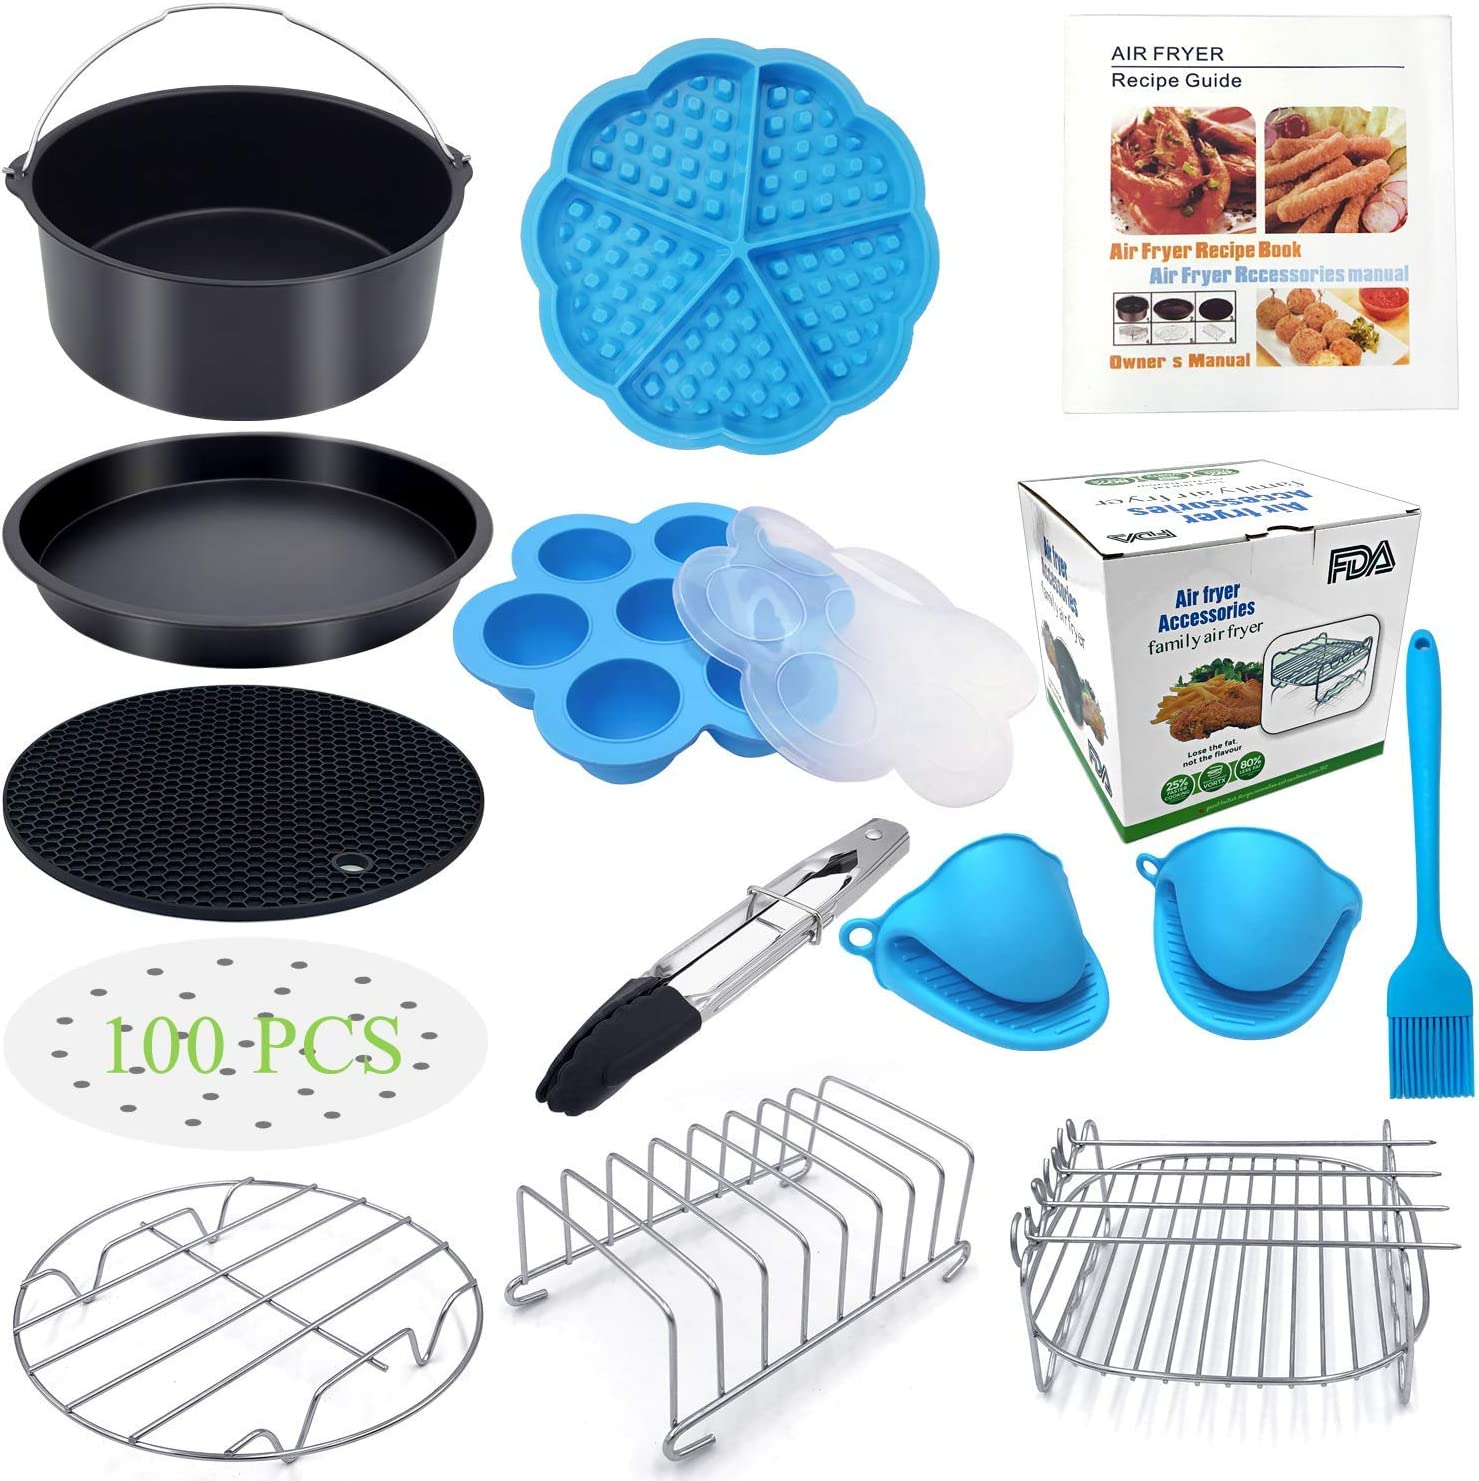 Eco Moda 7 inch Air Fryer Accessories 12 pcs with Recipe Cookbook Compatible with Ninja Foodi 5&6.5&8qt (OP101,OP301,OP302,OP401,FD401) and Growise Cosori Ninja and Philips Fit all 3.7QT - 5.8QT